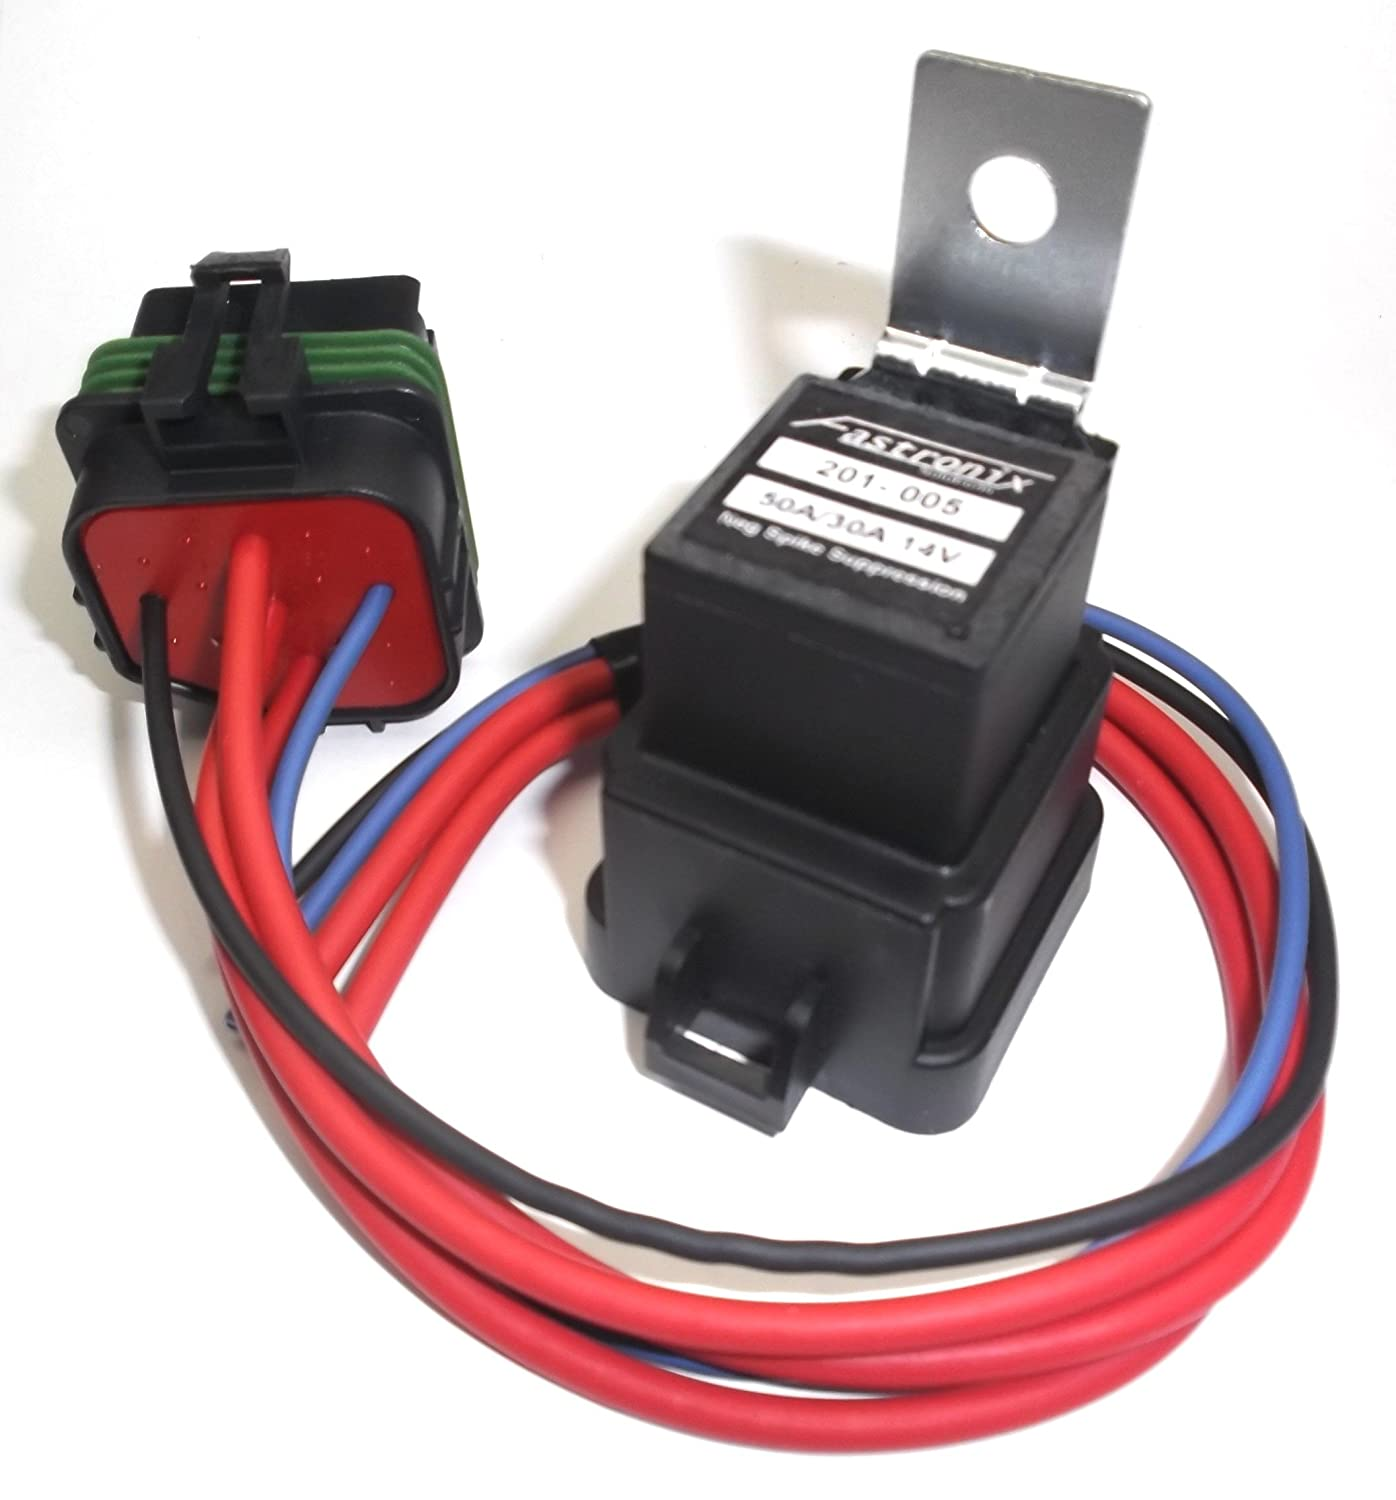 Fastronix 50/30 Amp Weatherproof Automotive Relay and Socket Kit Fastronix Solutions 900-005